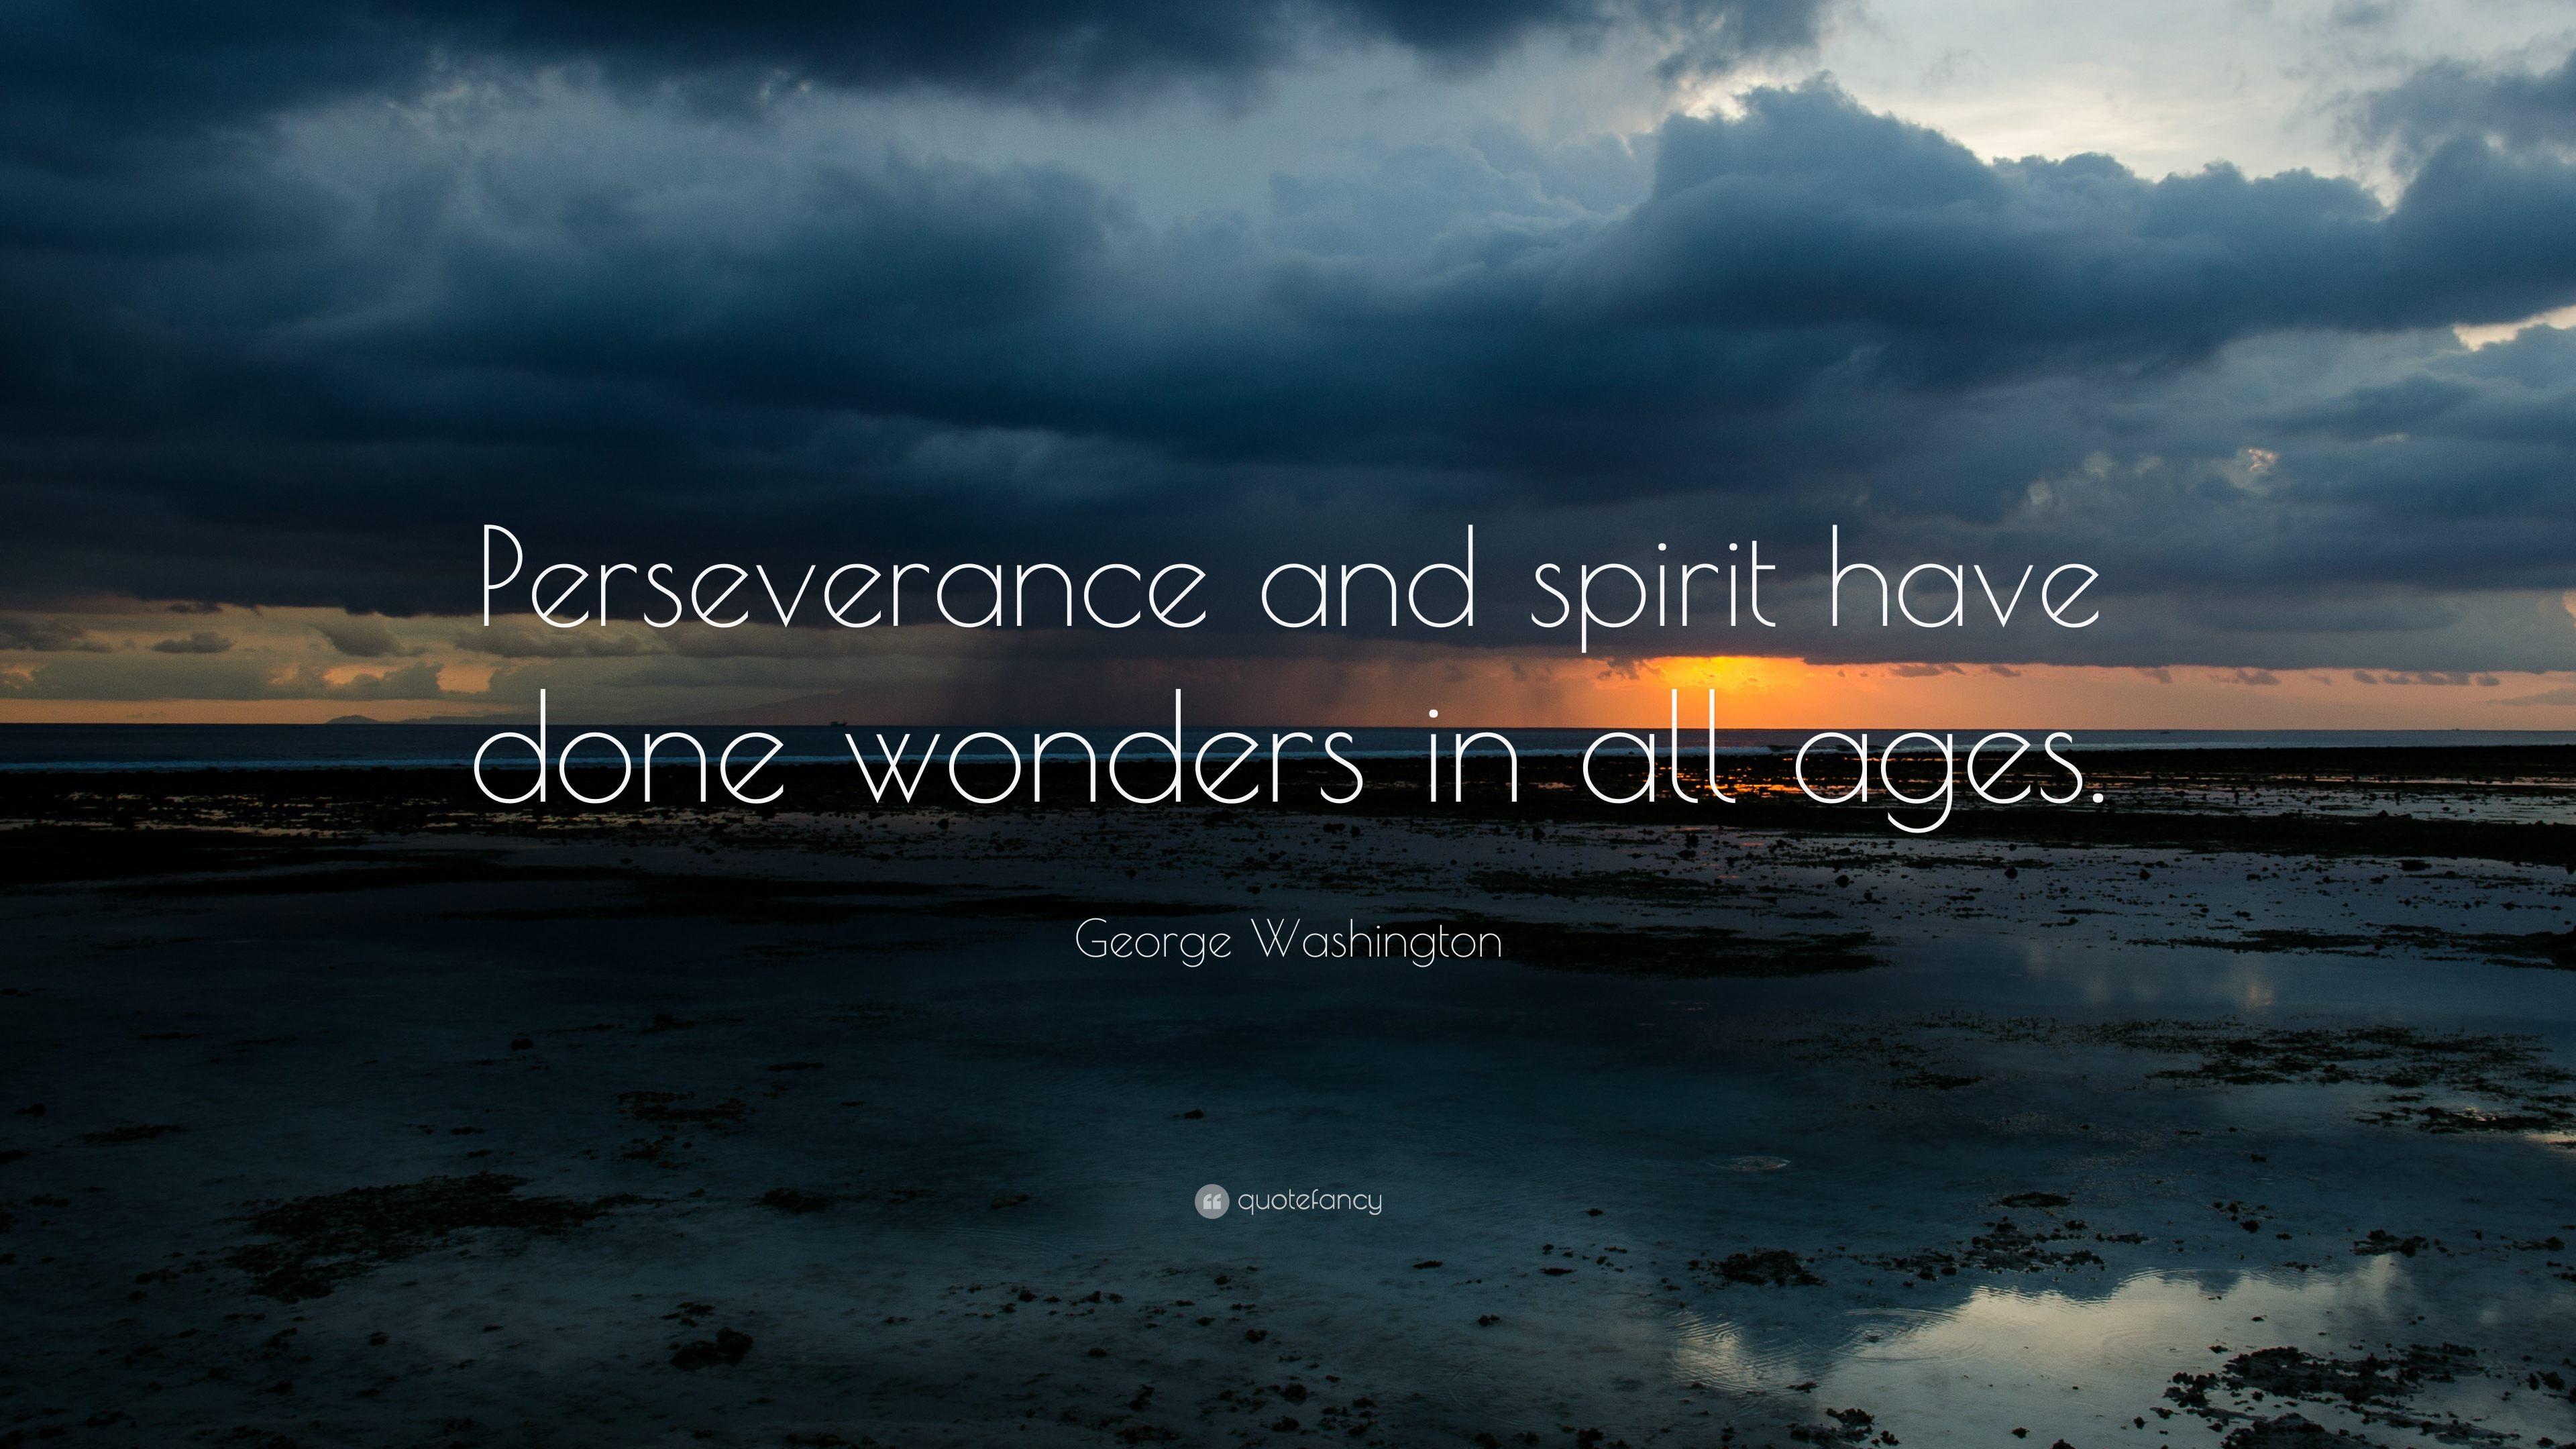 Motivational Quotes On Attitude Wallpapers George Washington Quote Perseverance And Spirit Have